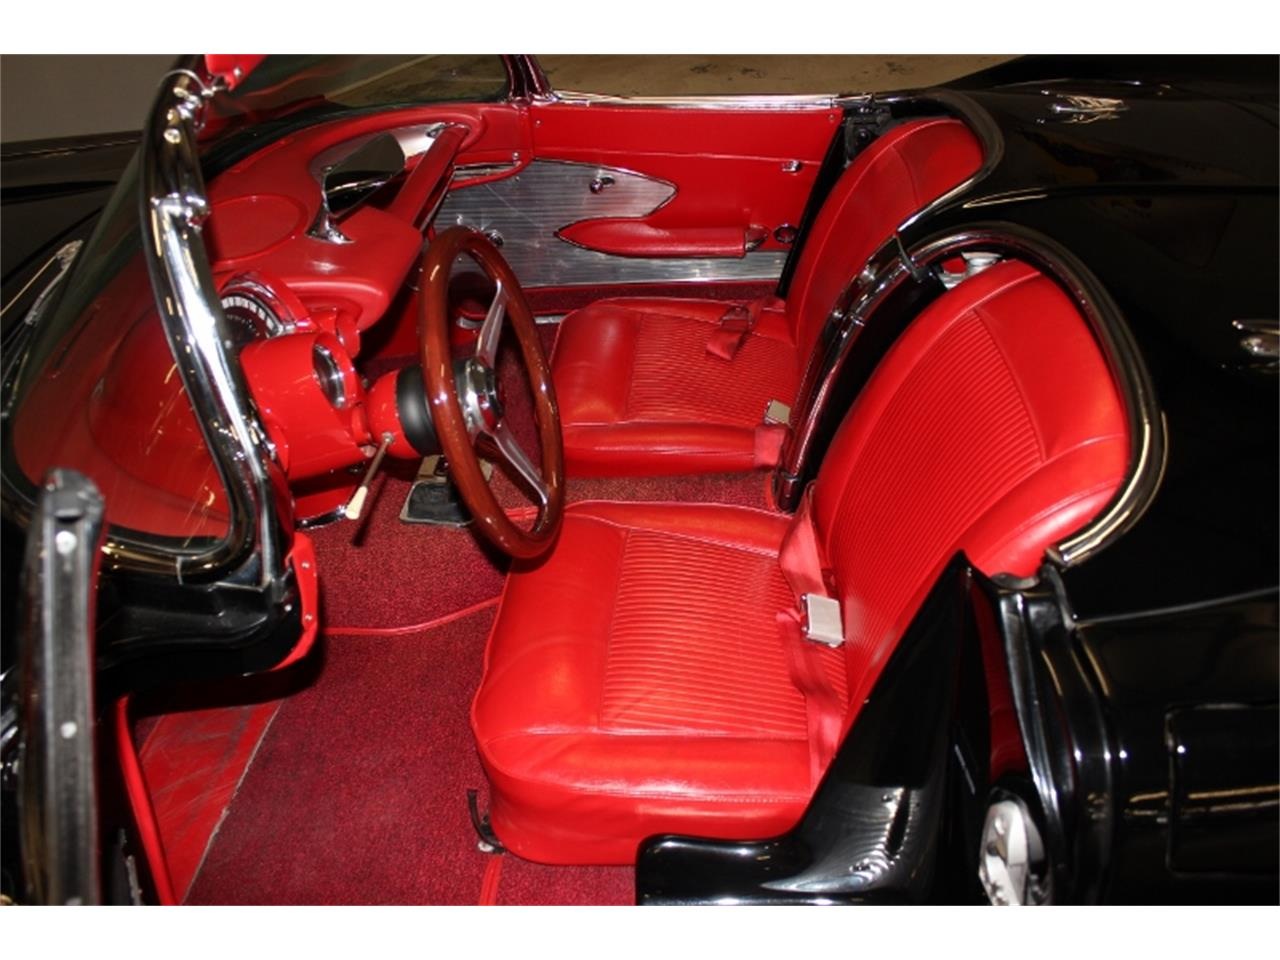 Large Picture of '61 Chevrolet Corvette located in North Carolina - $90,000.00 Offered by East Coast Classic Cars - KT5Z